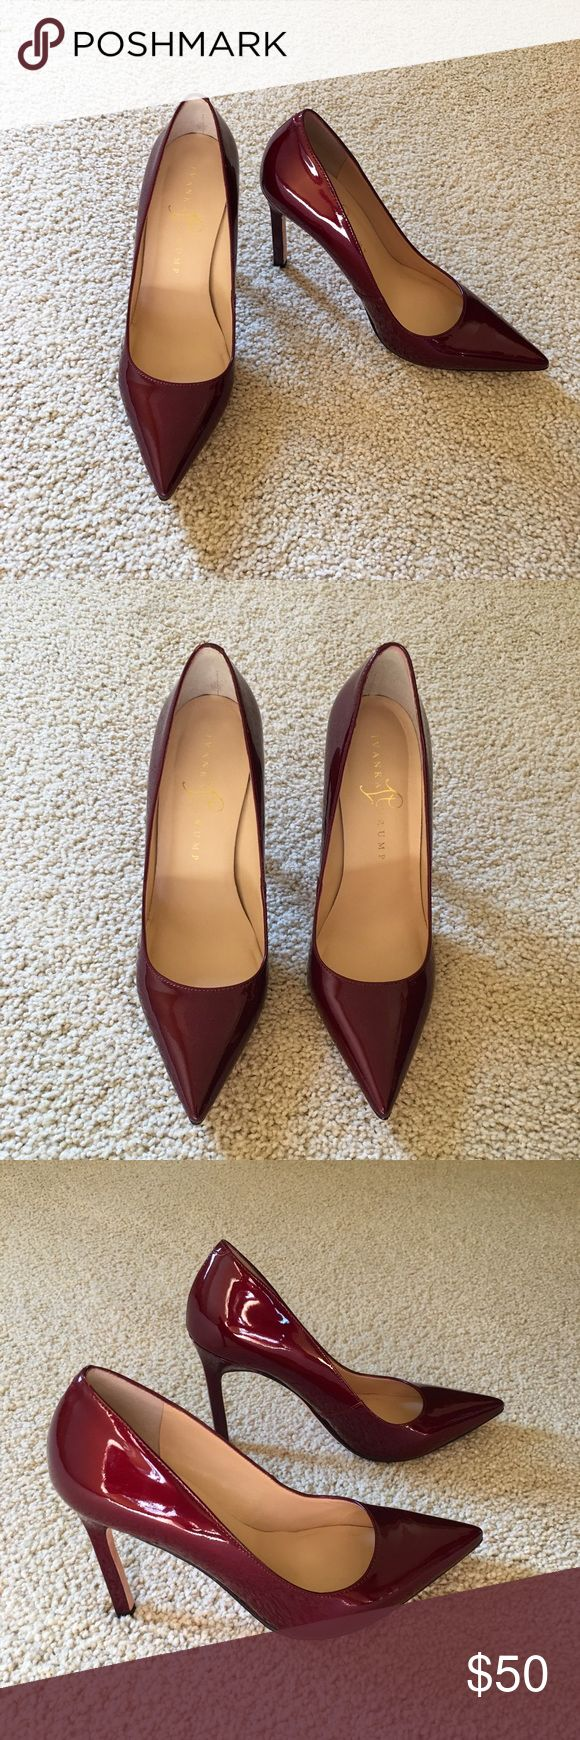 Ivanka Trump Red Patent Leather Pointed Toe Pump Kayden 4 style. 4 1/4 inch heel. Bought from another posher but they are too small for me :( || stunning shoe and awesome brand - I love all of my shoes from her! Ivanka Trump Shoes Heels